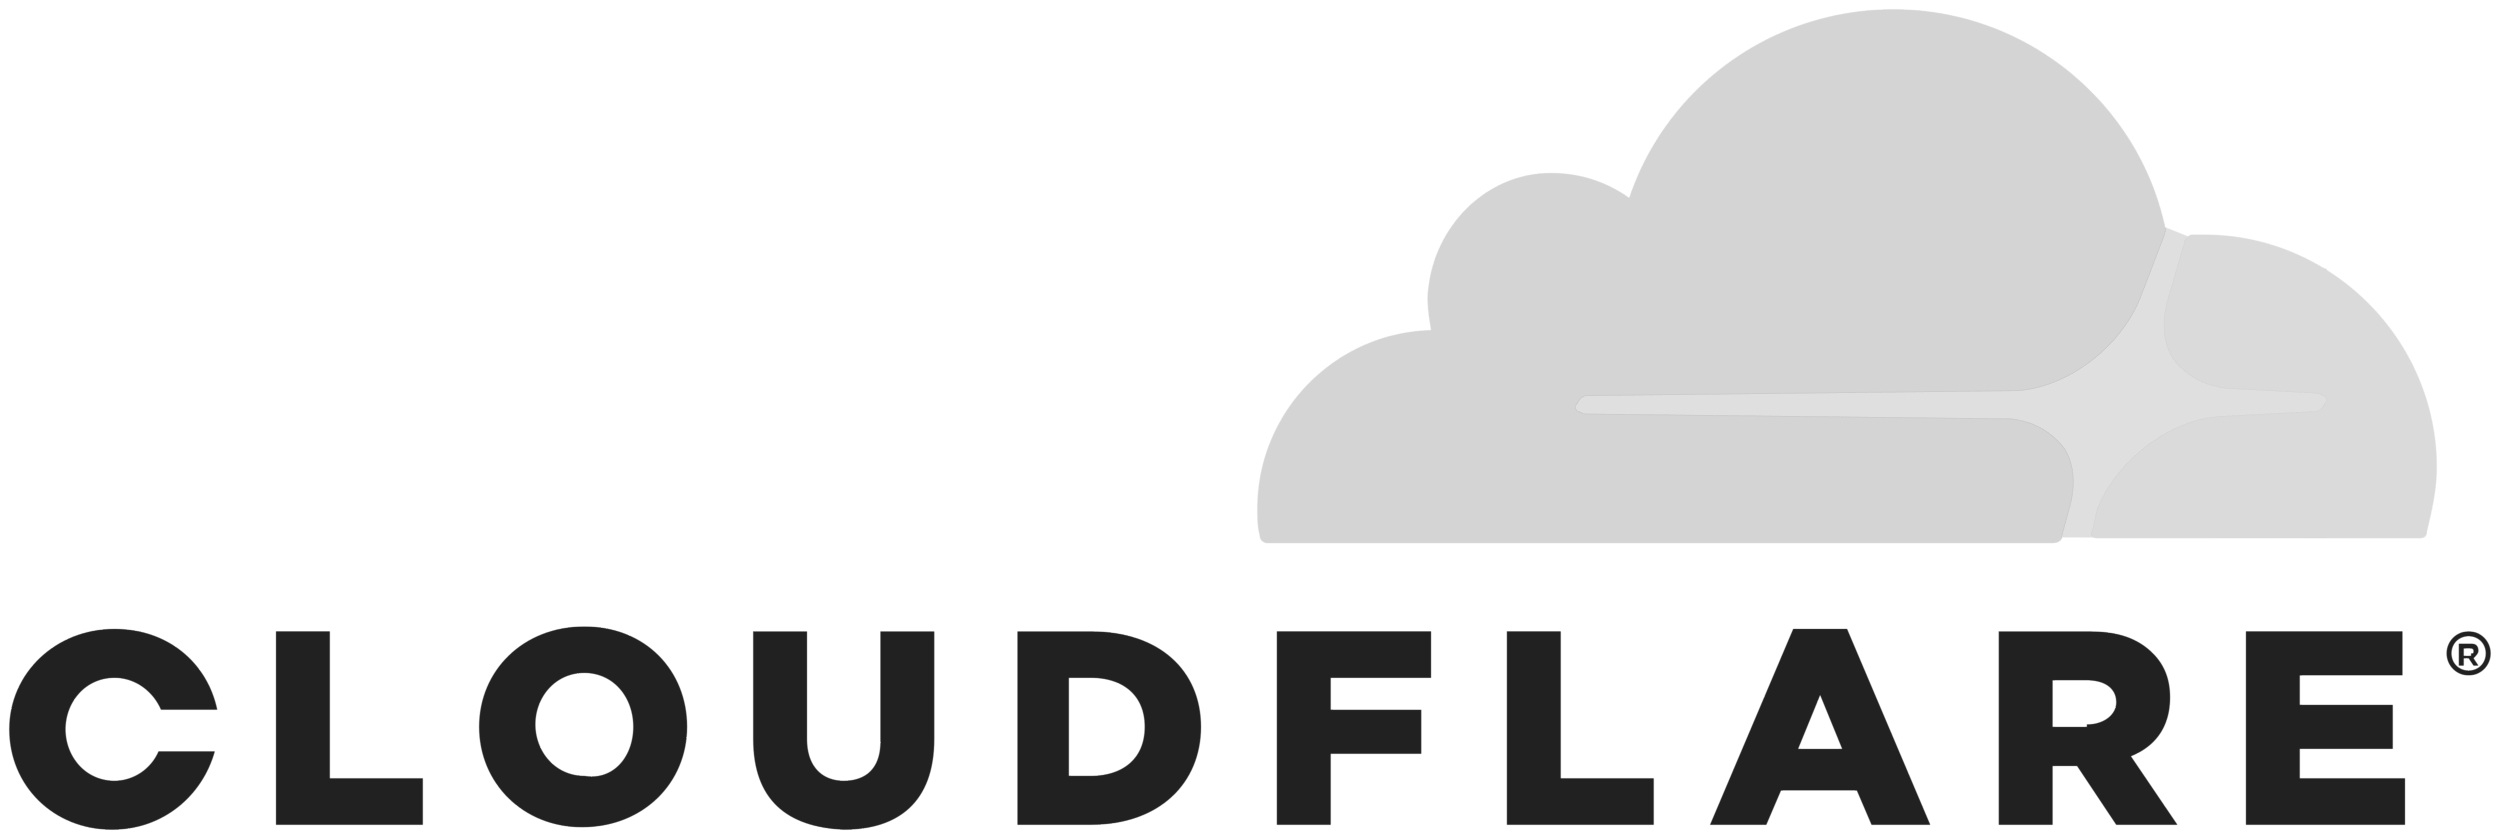 Cloudflare-logo.png